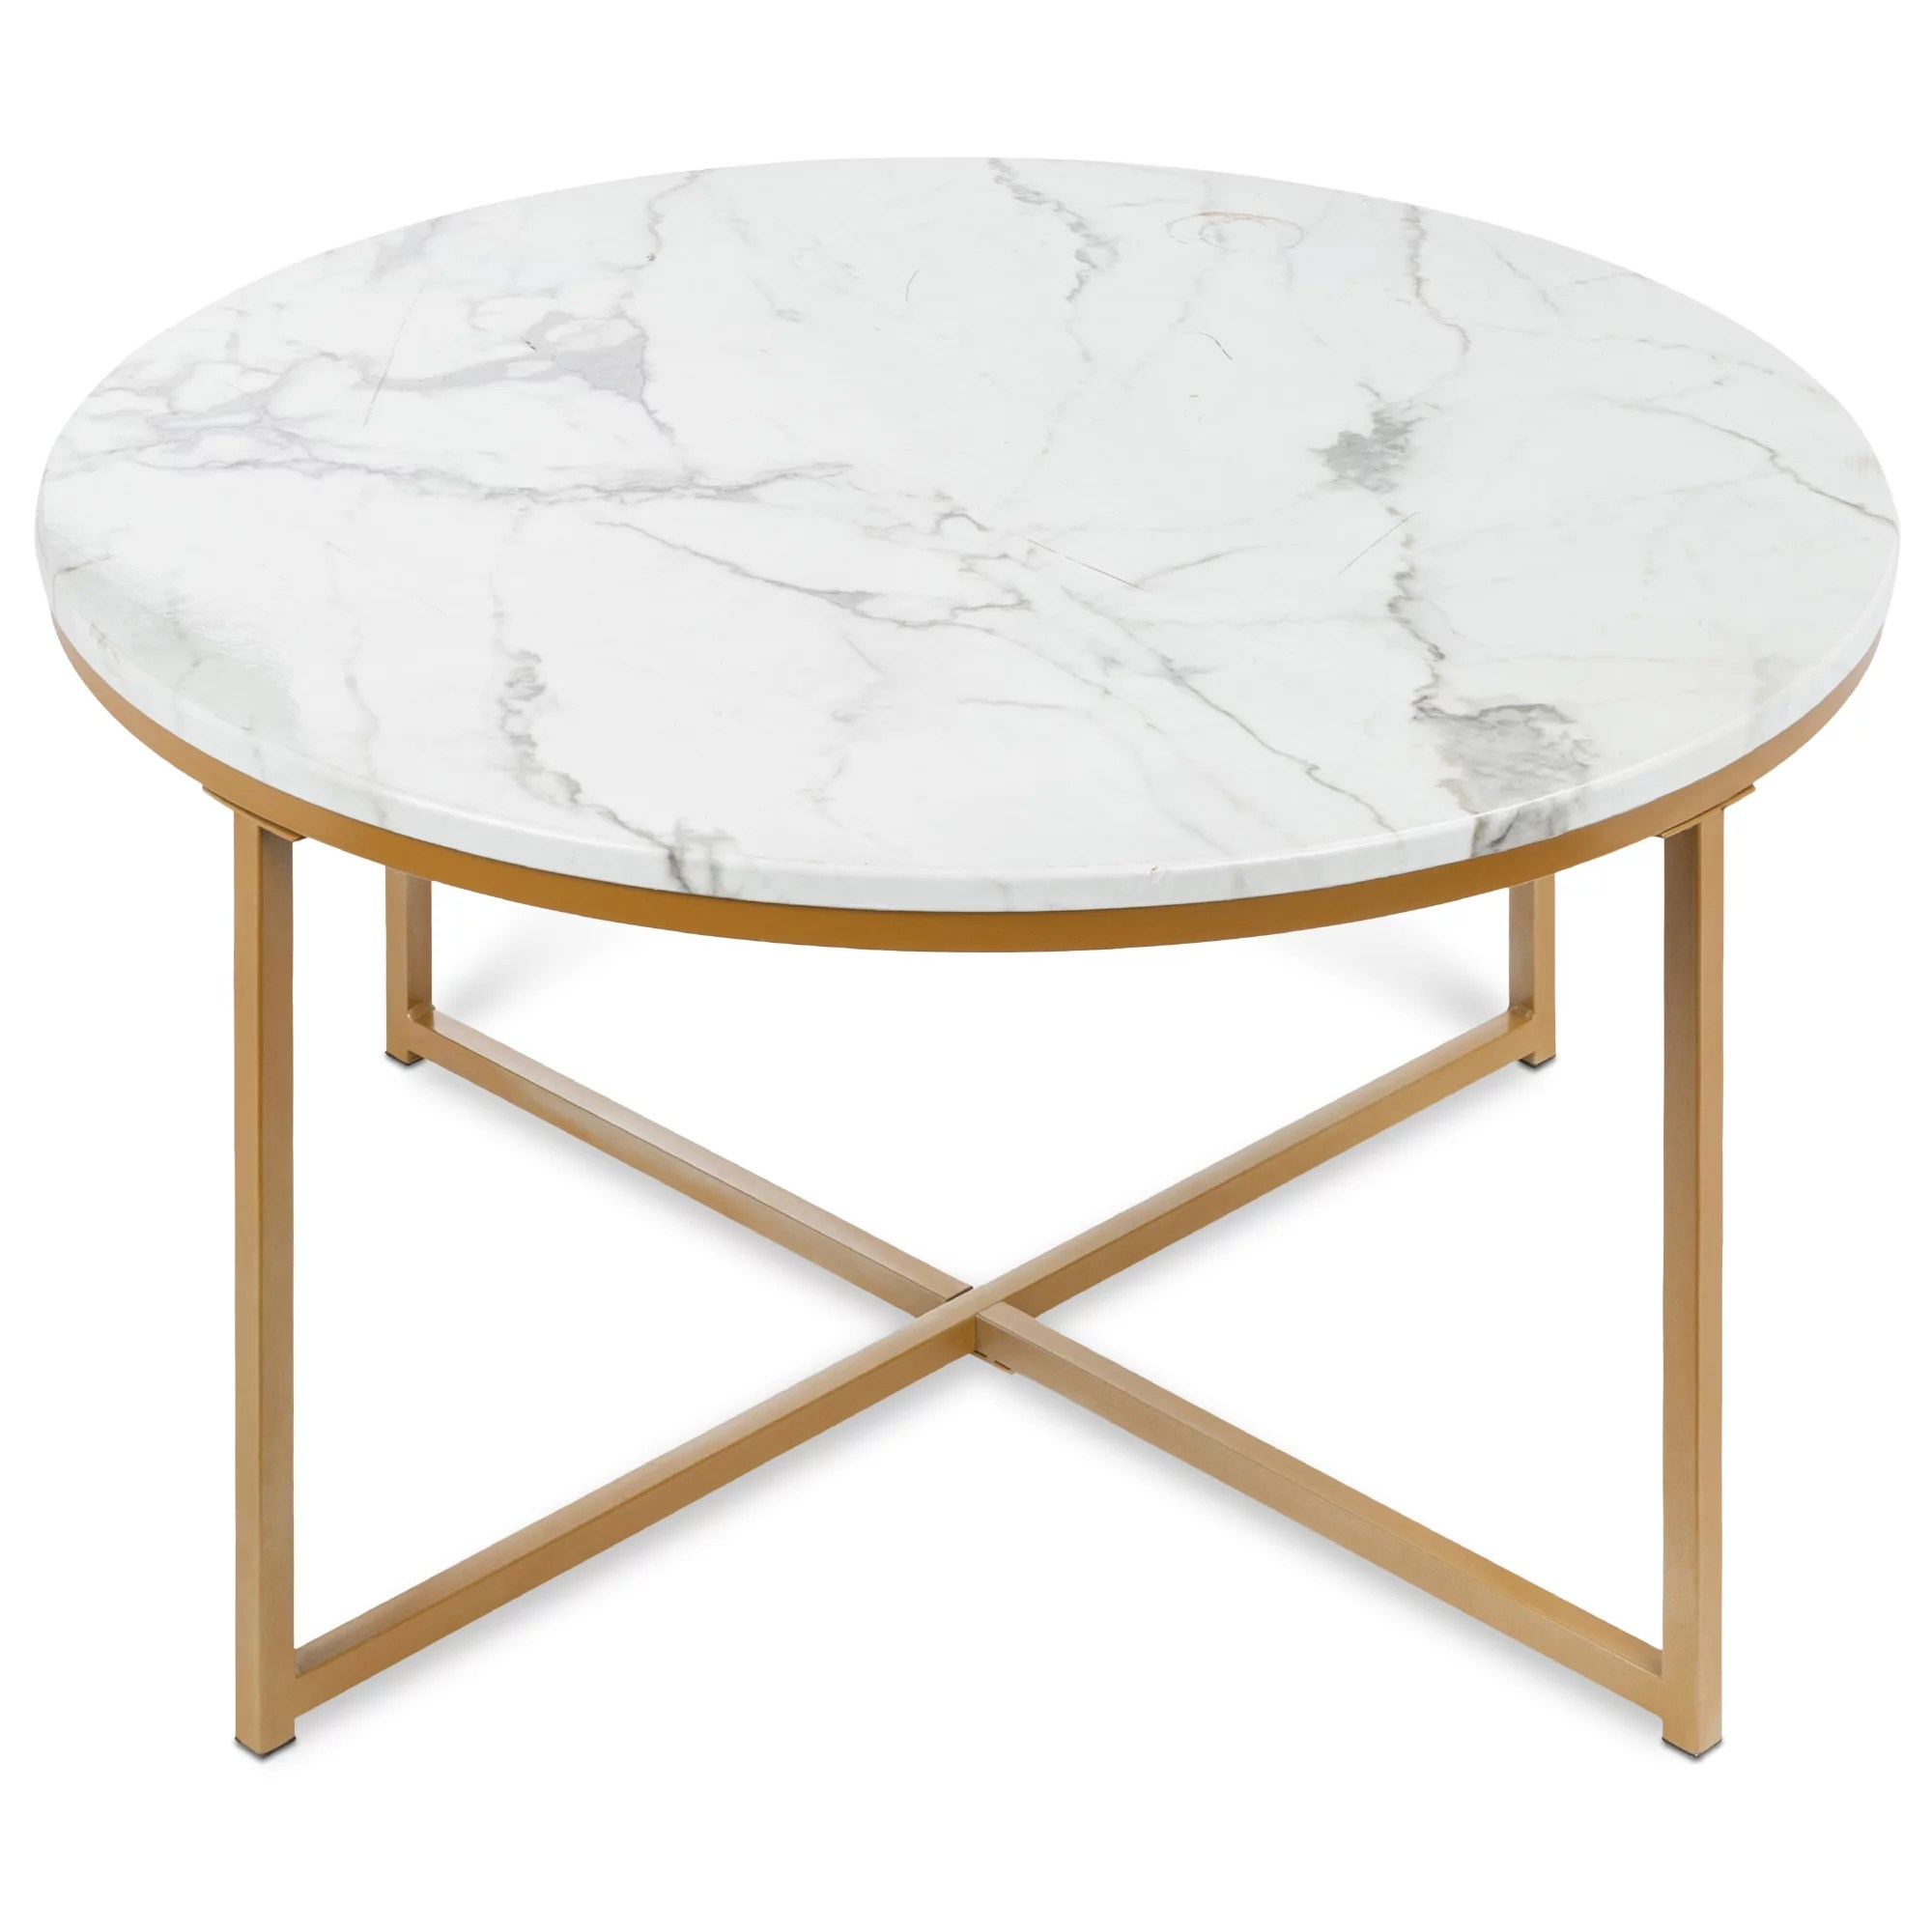 Round Coffee Table 18x22 Inch White Desk Side Table Coffee Table Mid Century Modern Rustic Wooden Table With 3 Legs Pillars White Night Stands For Bedrooms Bedside Table Home Kitchen Home